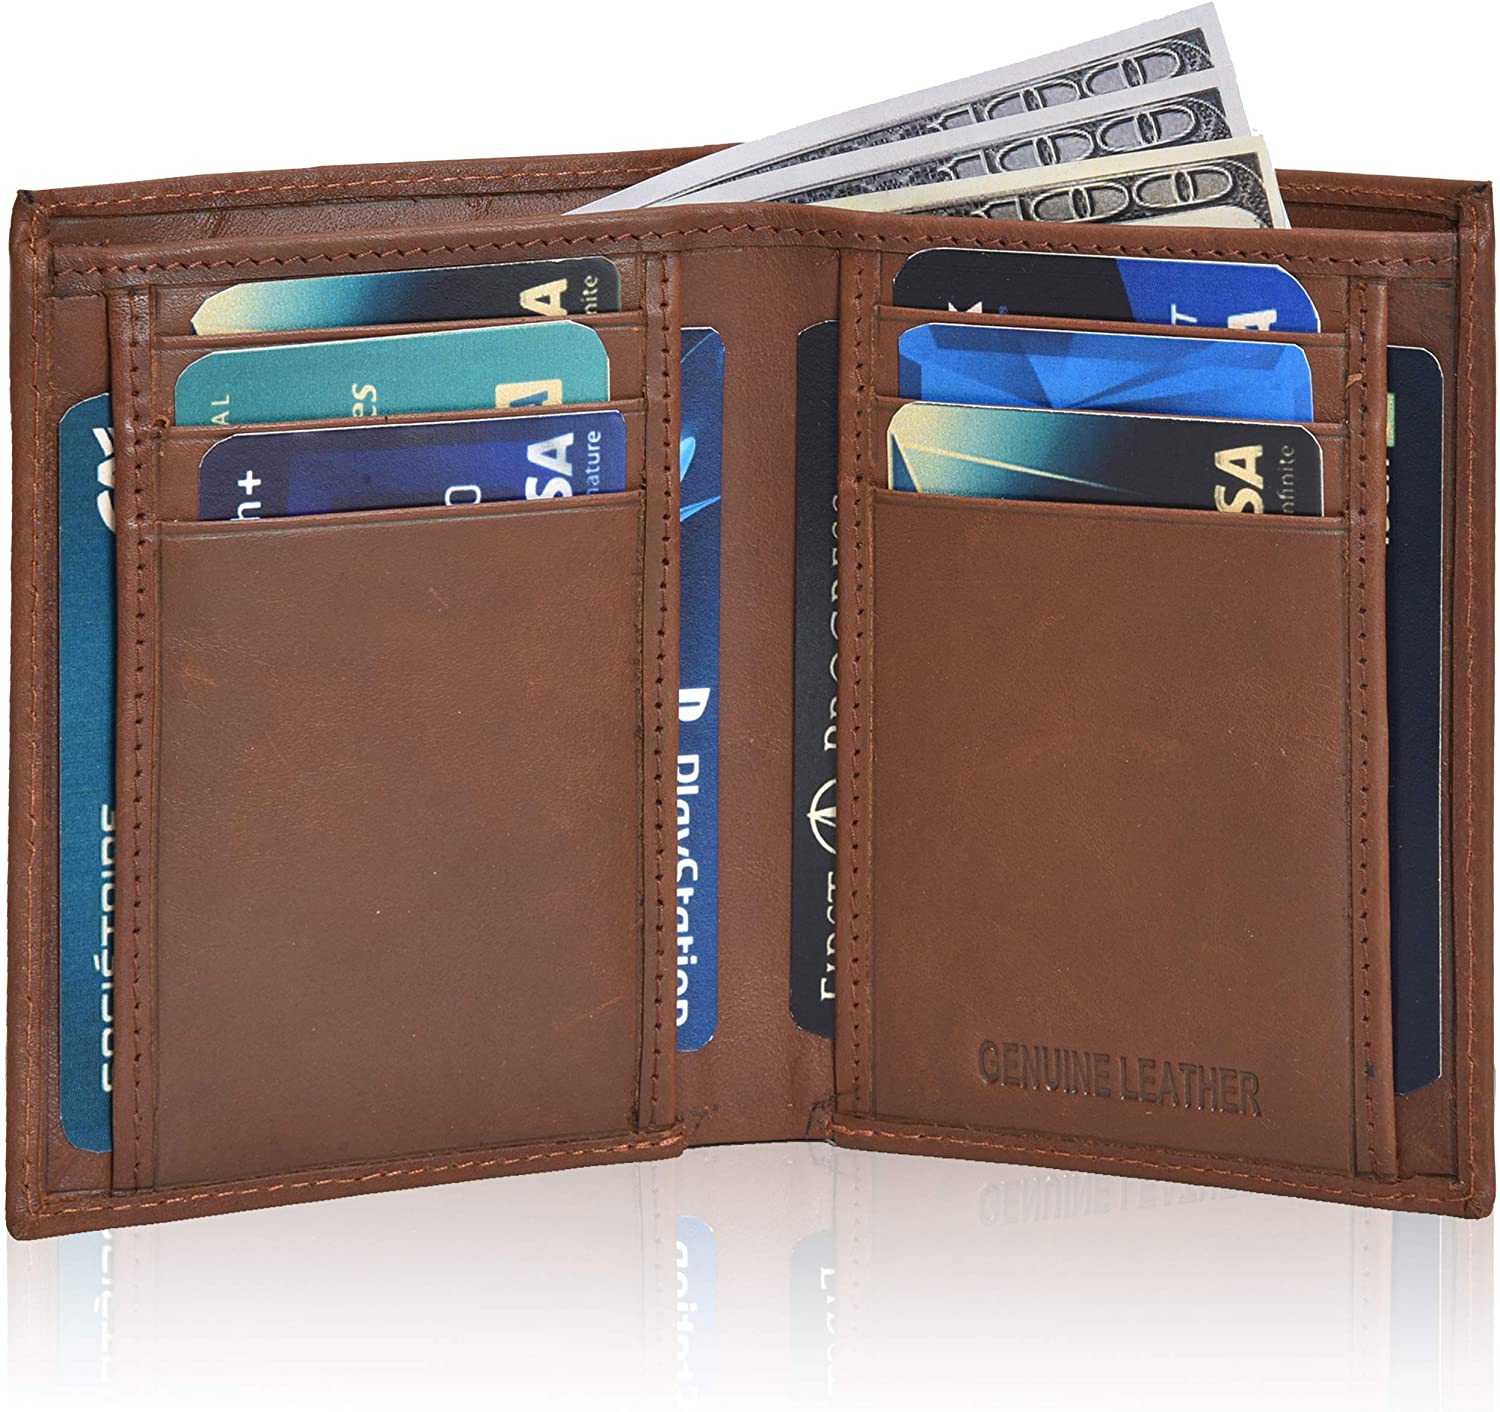 Bifold Leather Wallets For Men Slim - Mens Wallet Billfold With ID Window RFID Blocking Box Holiday Gifts For Men